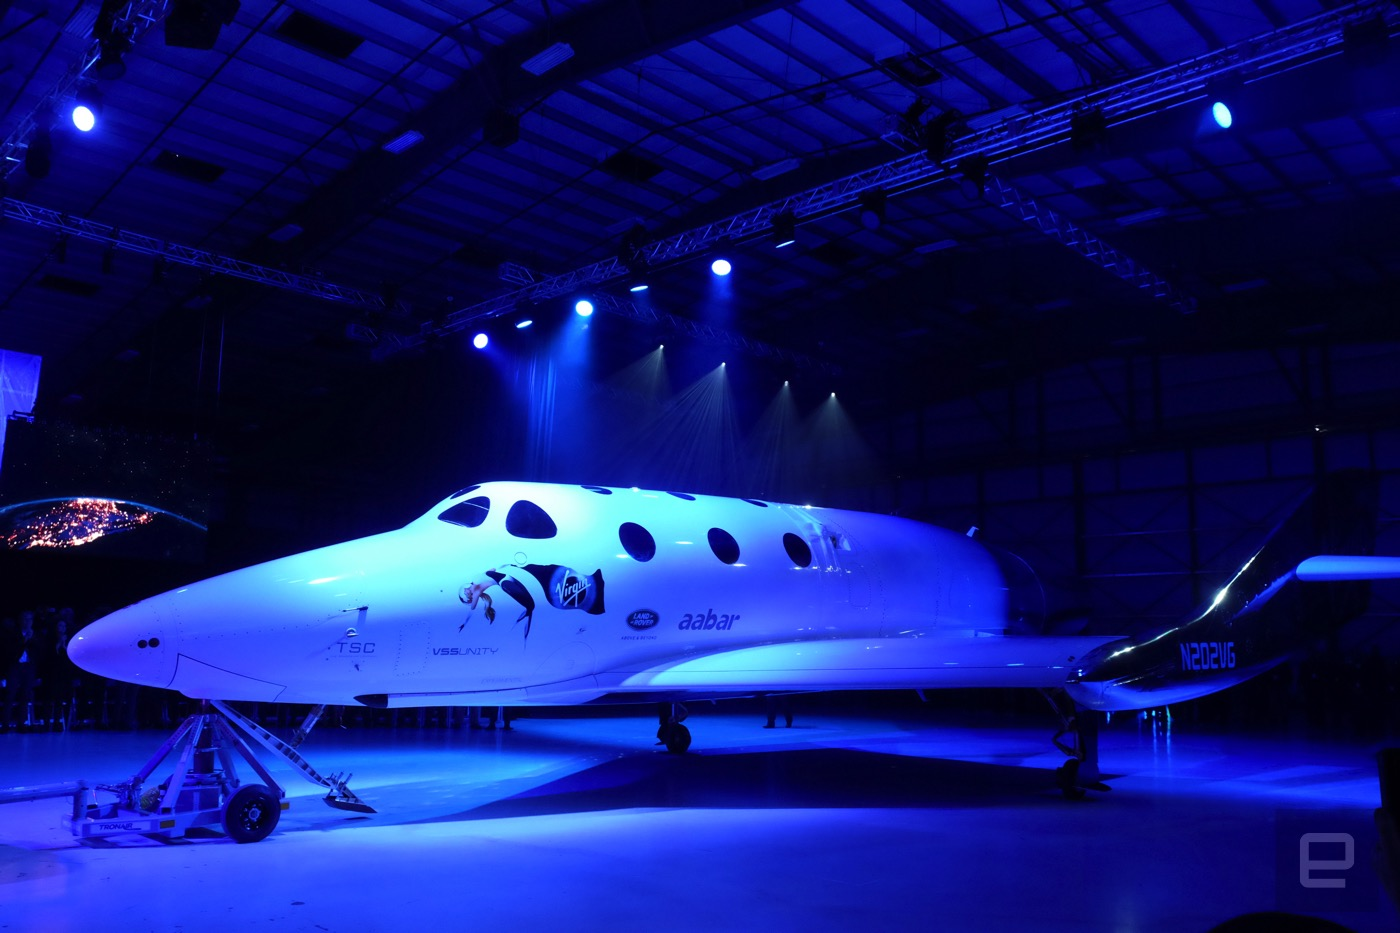 Virgin Galactic unveils the new SpaceShip Two